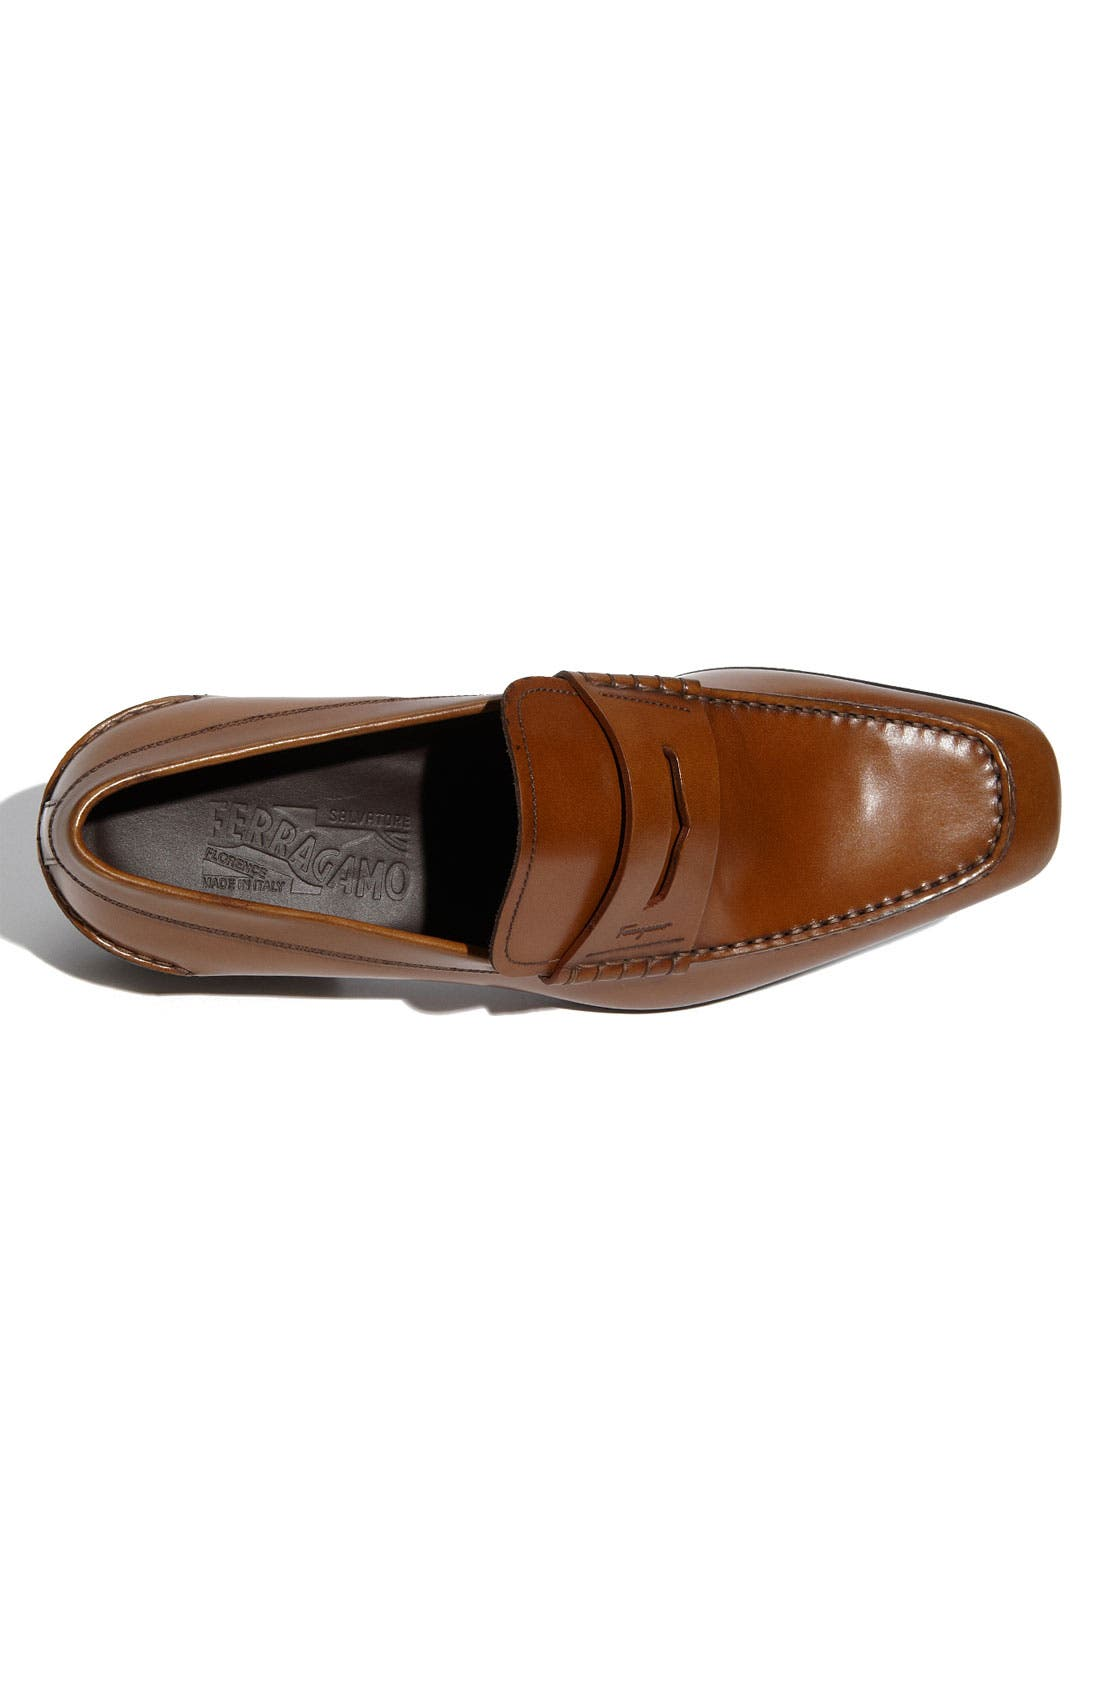 Alternate Image 3  - Salvatore Ferragamo 'Canto' Penny Loafer